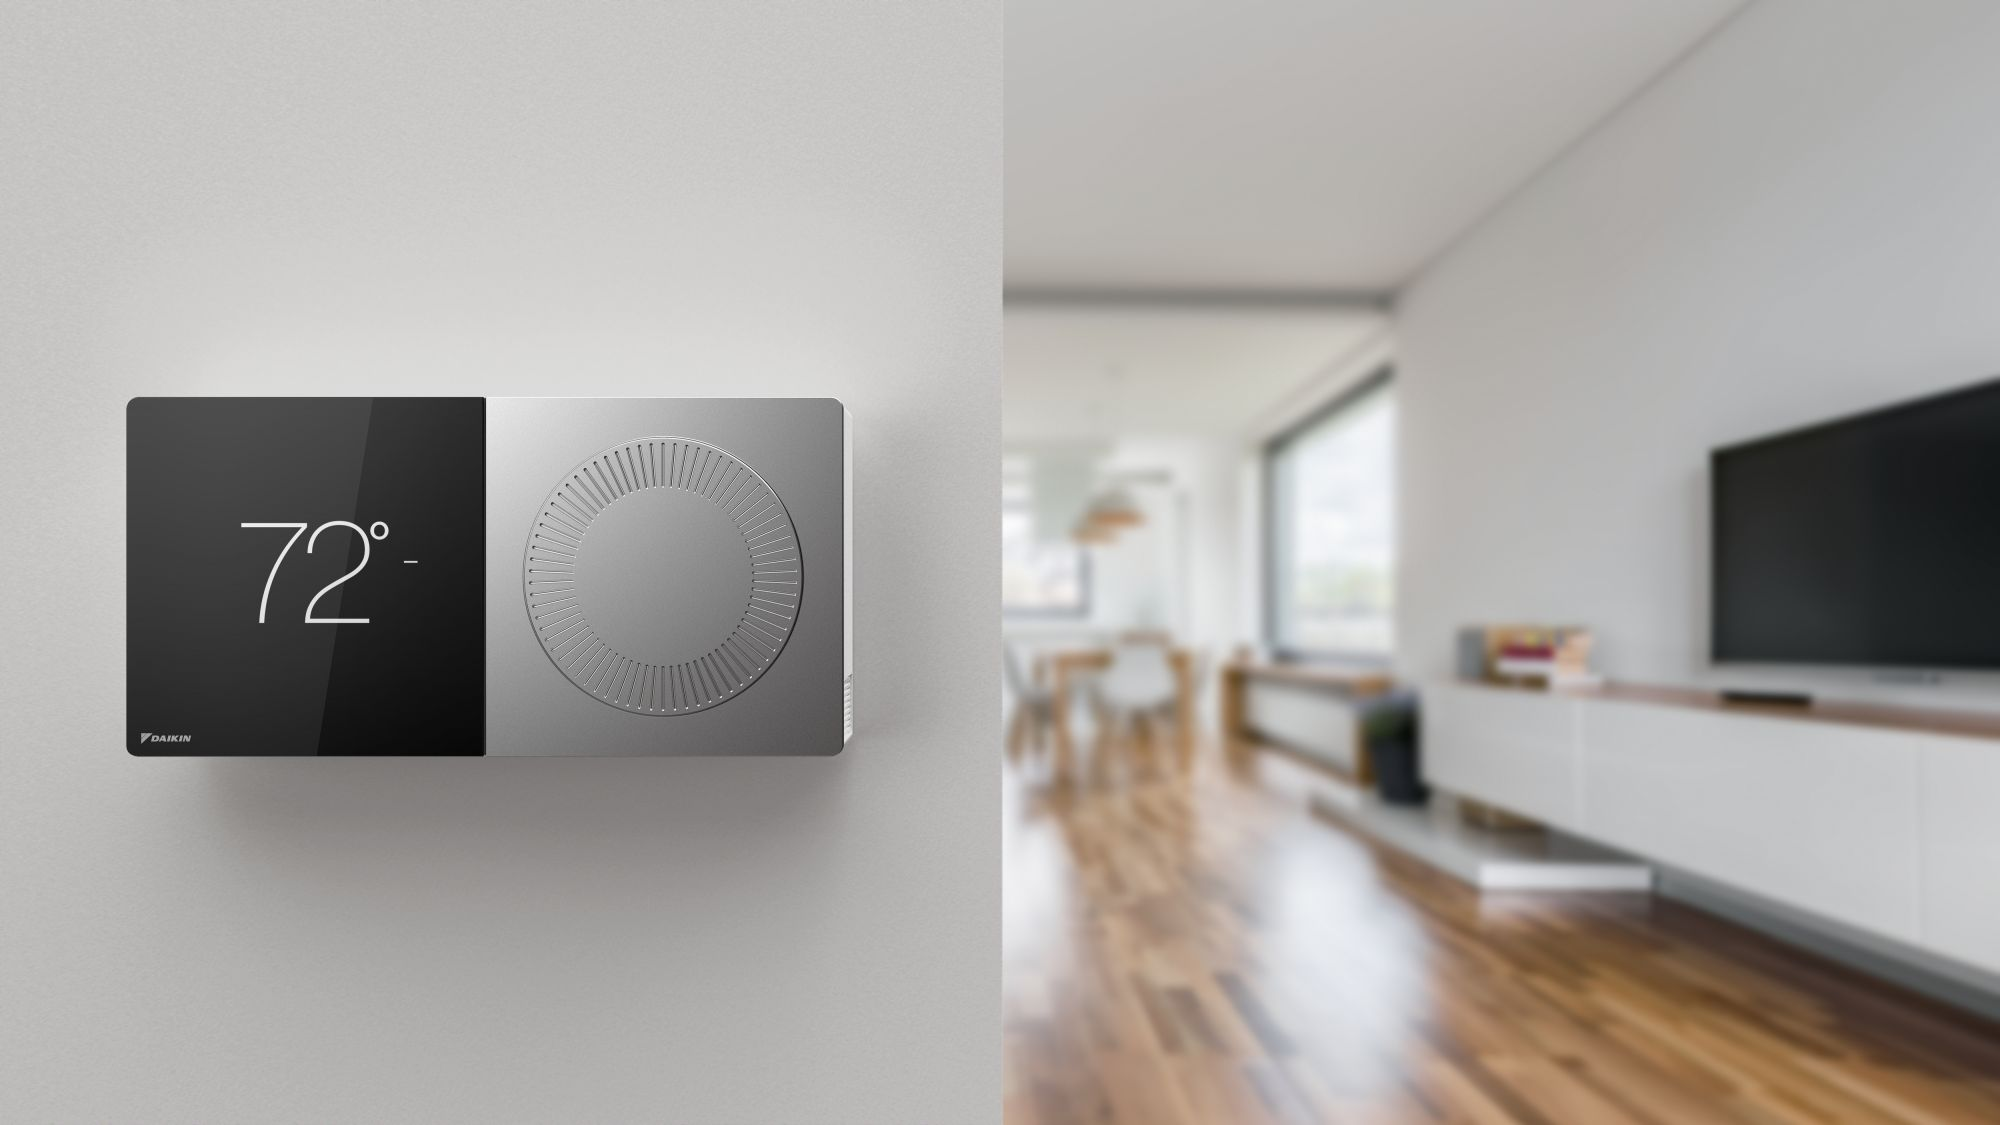 8 Smart Home Devices From CES 2019 That Prove We're Living In The Future